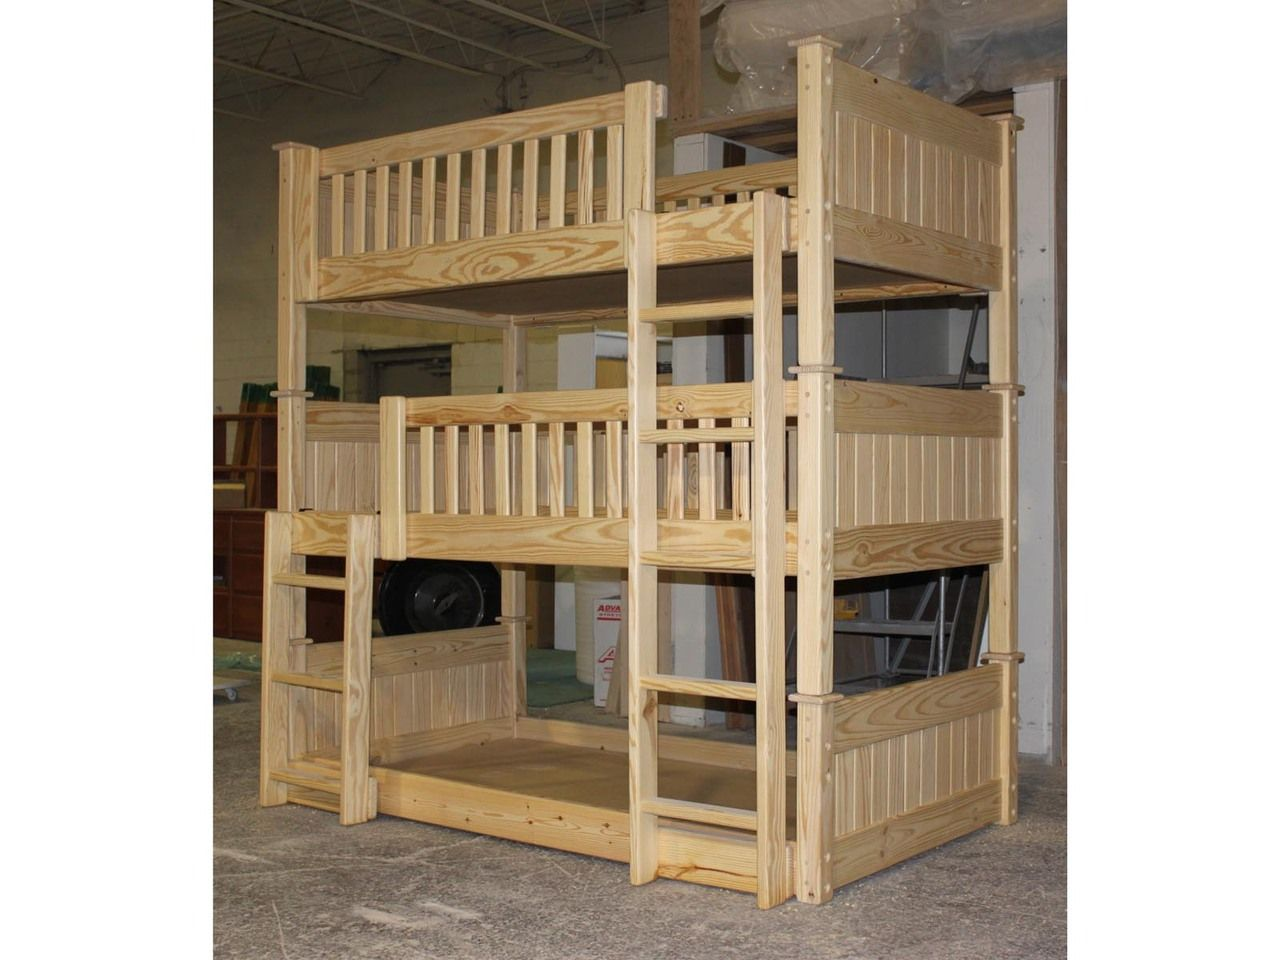 Custom Triple Bunk Bed B64 The Bunk Loft Factory Pinterest